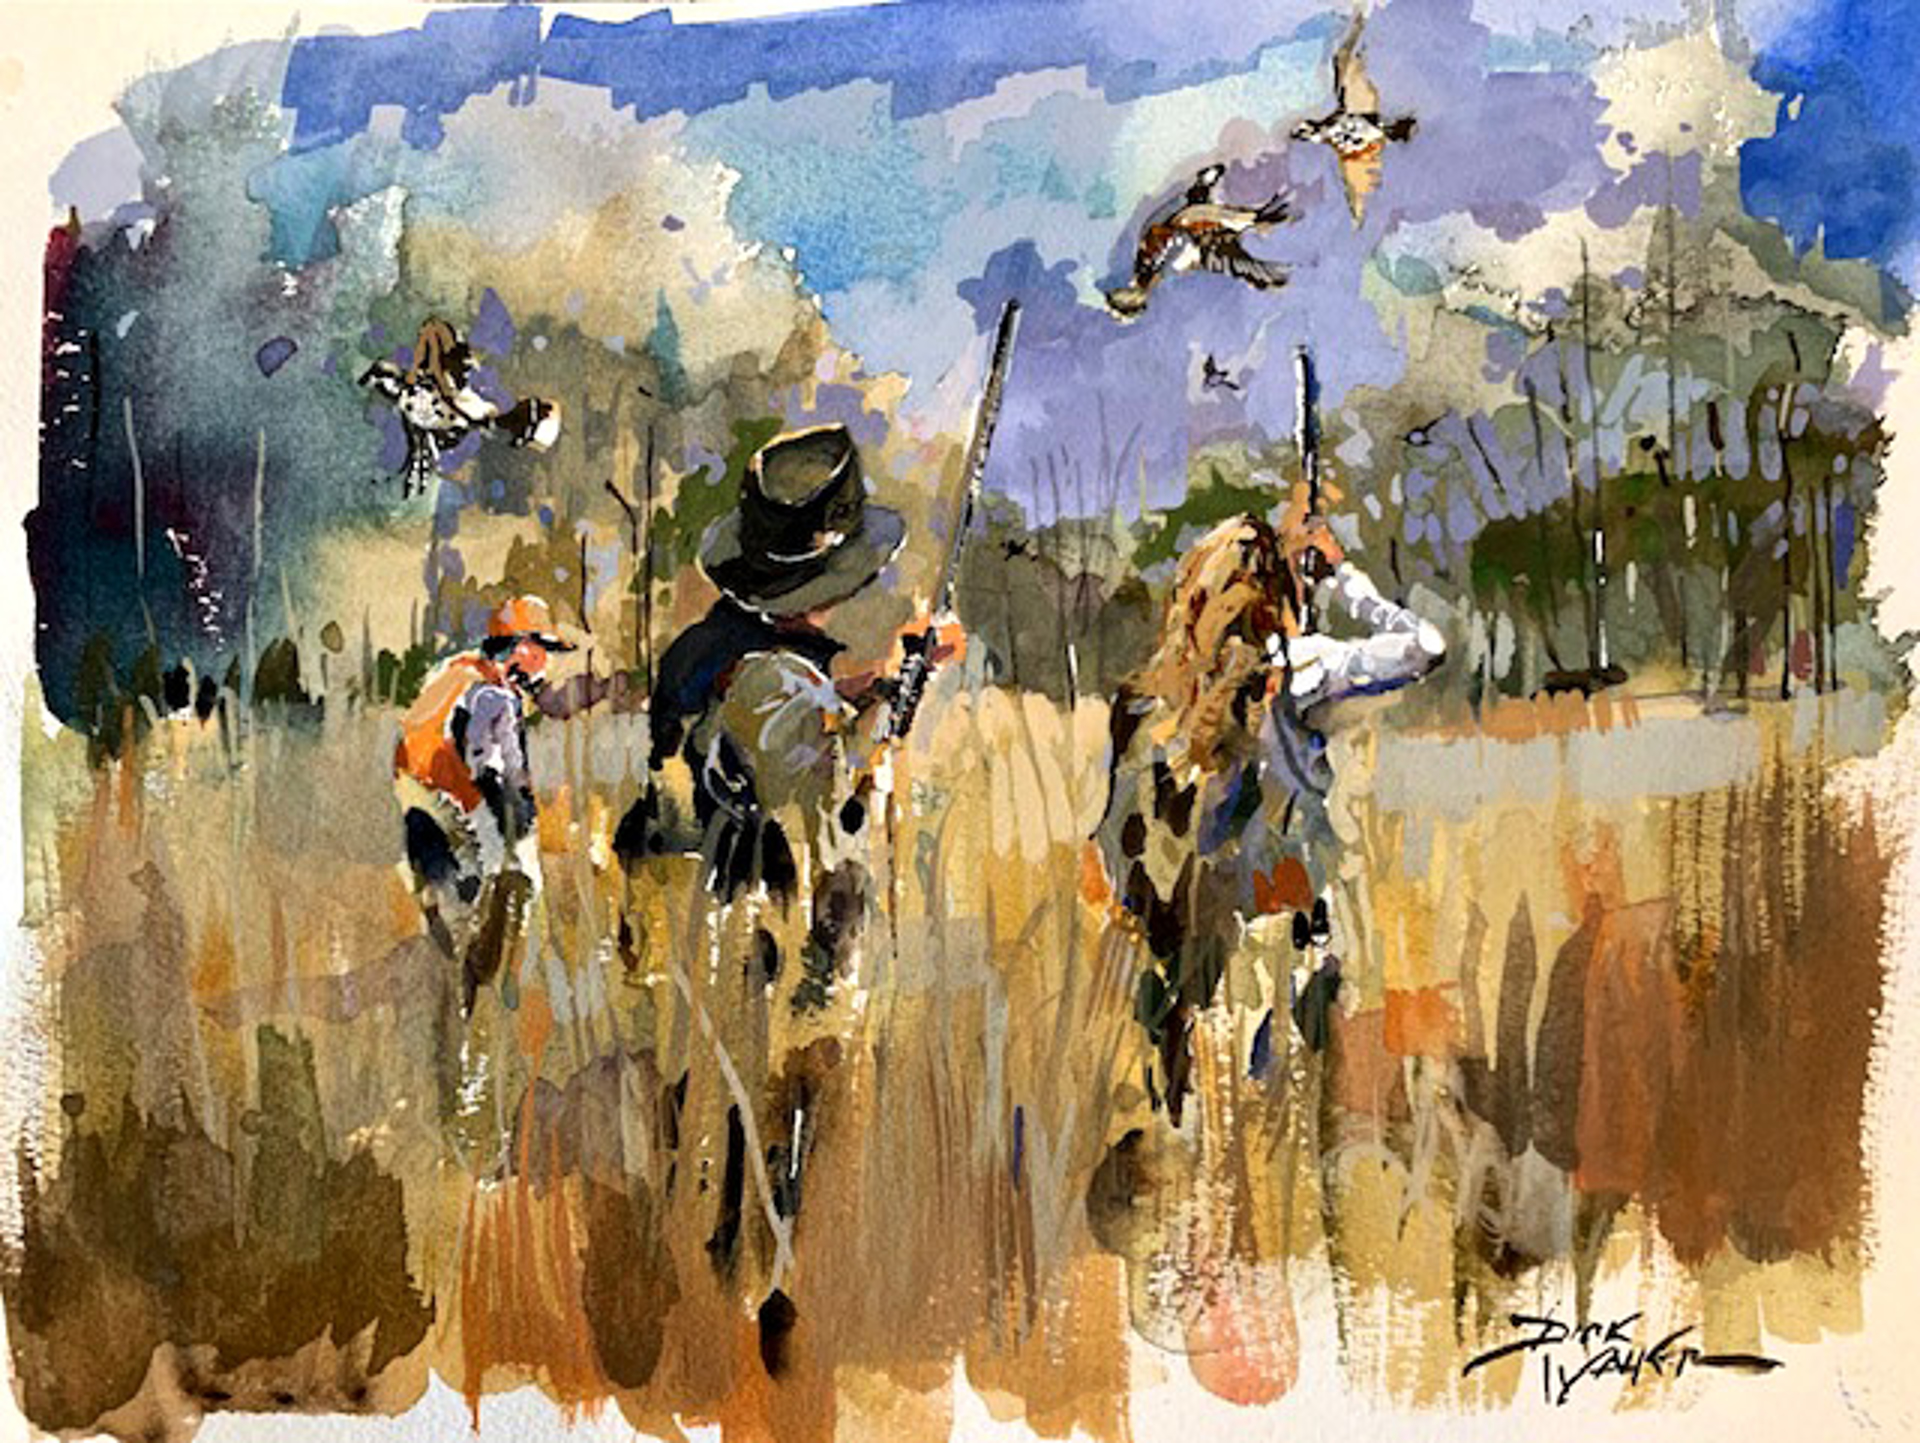 Father & Daughter Quail Hunt by Dirk Walker